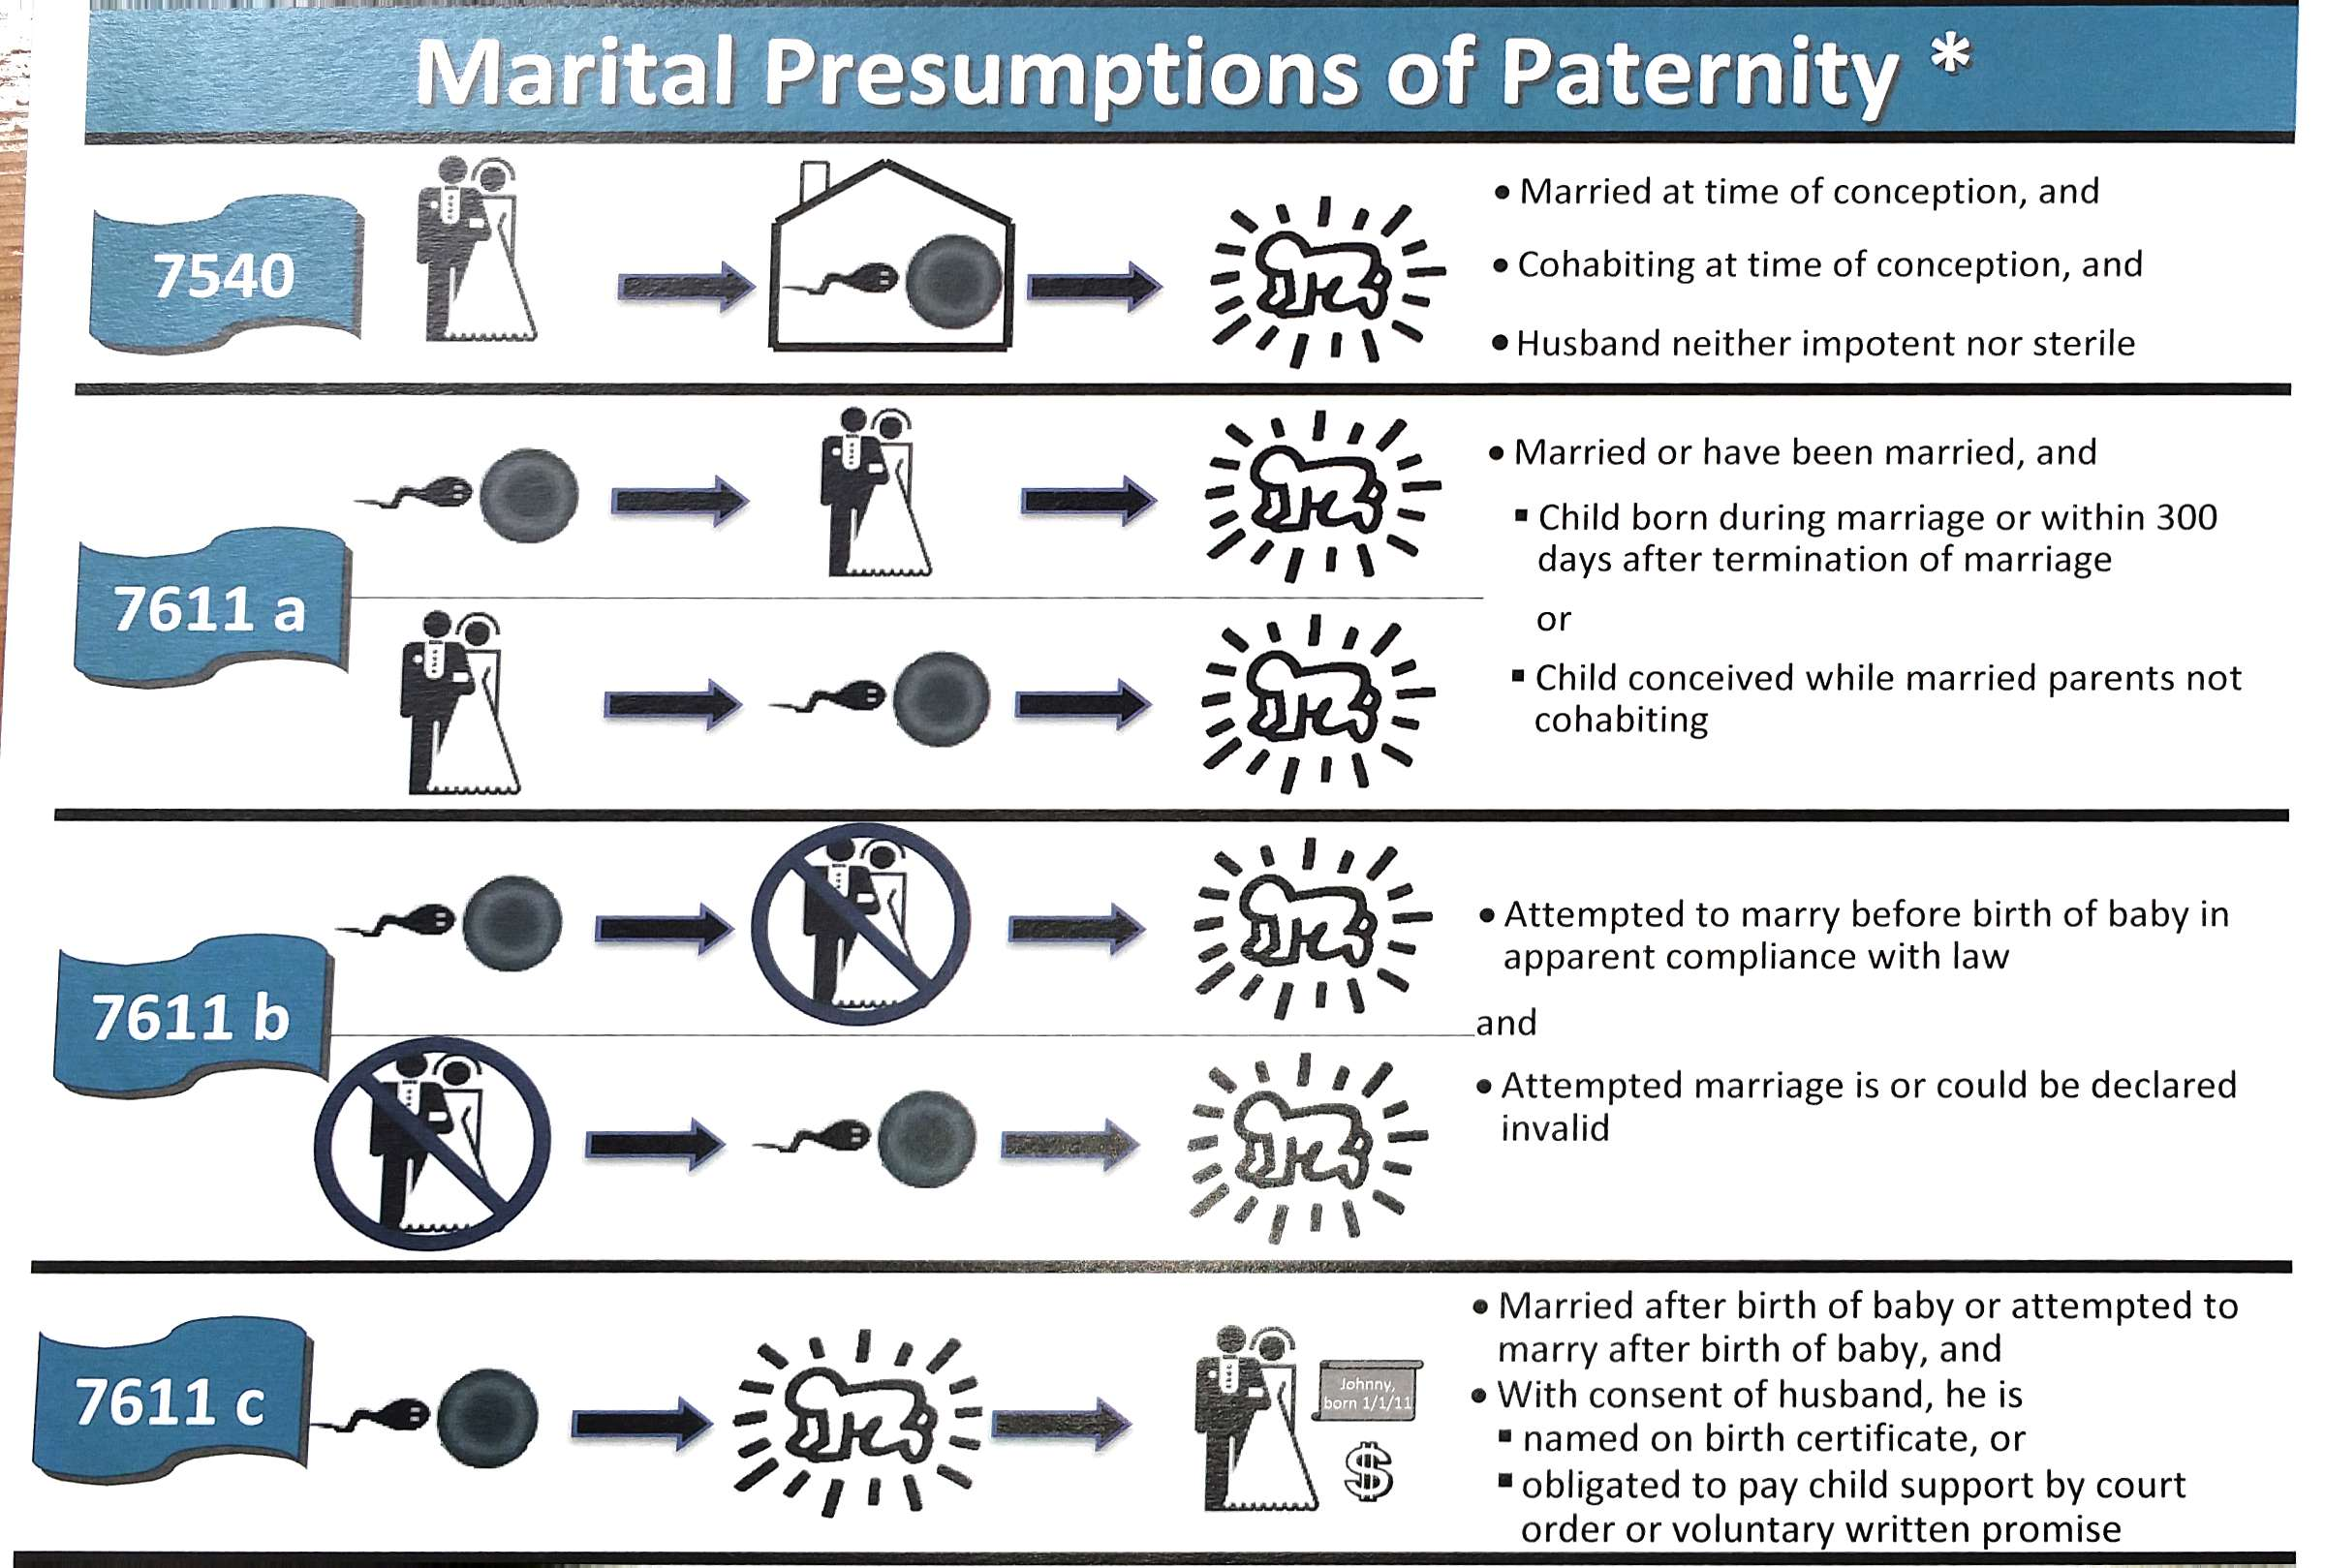 legal visual - marital presumption of paternity